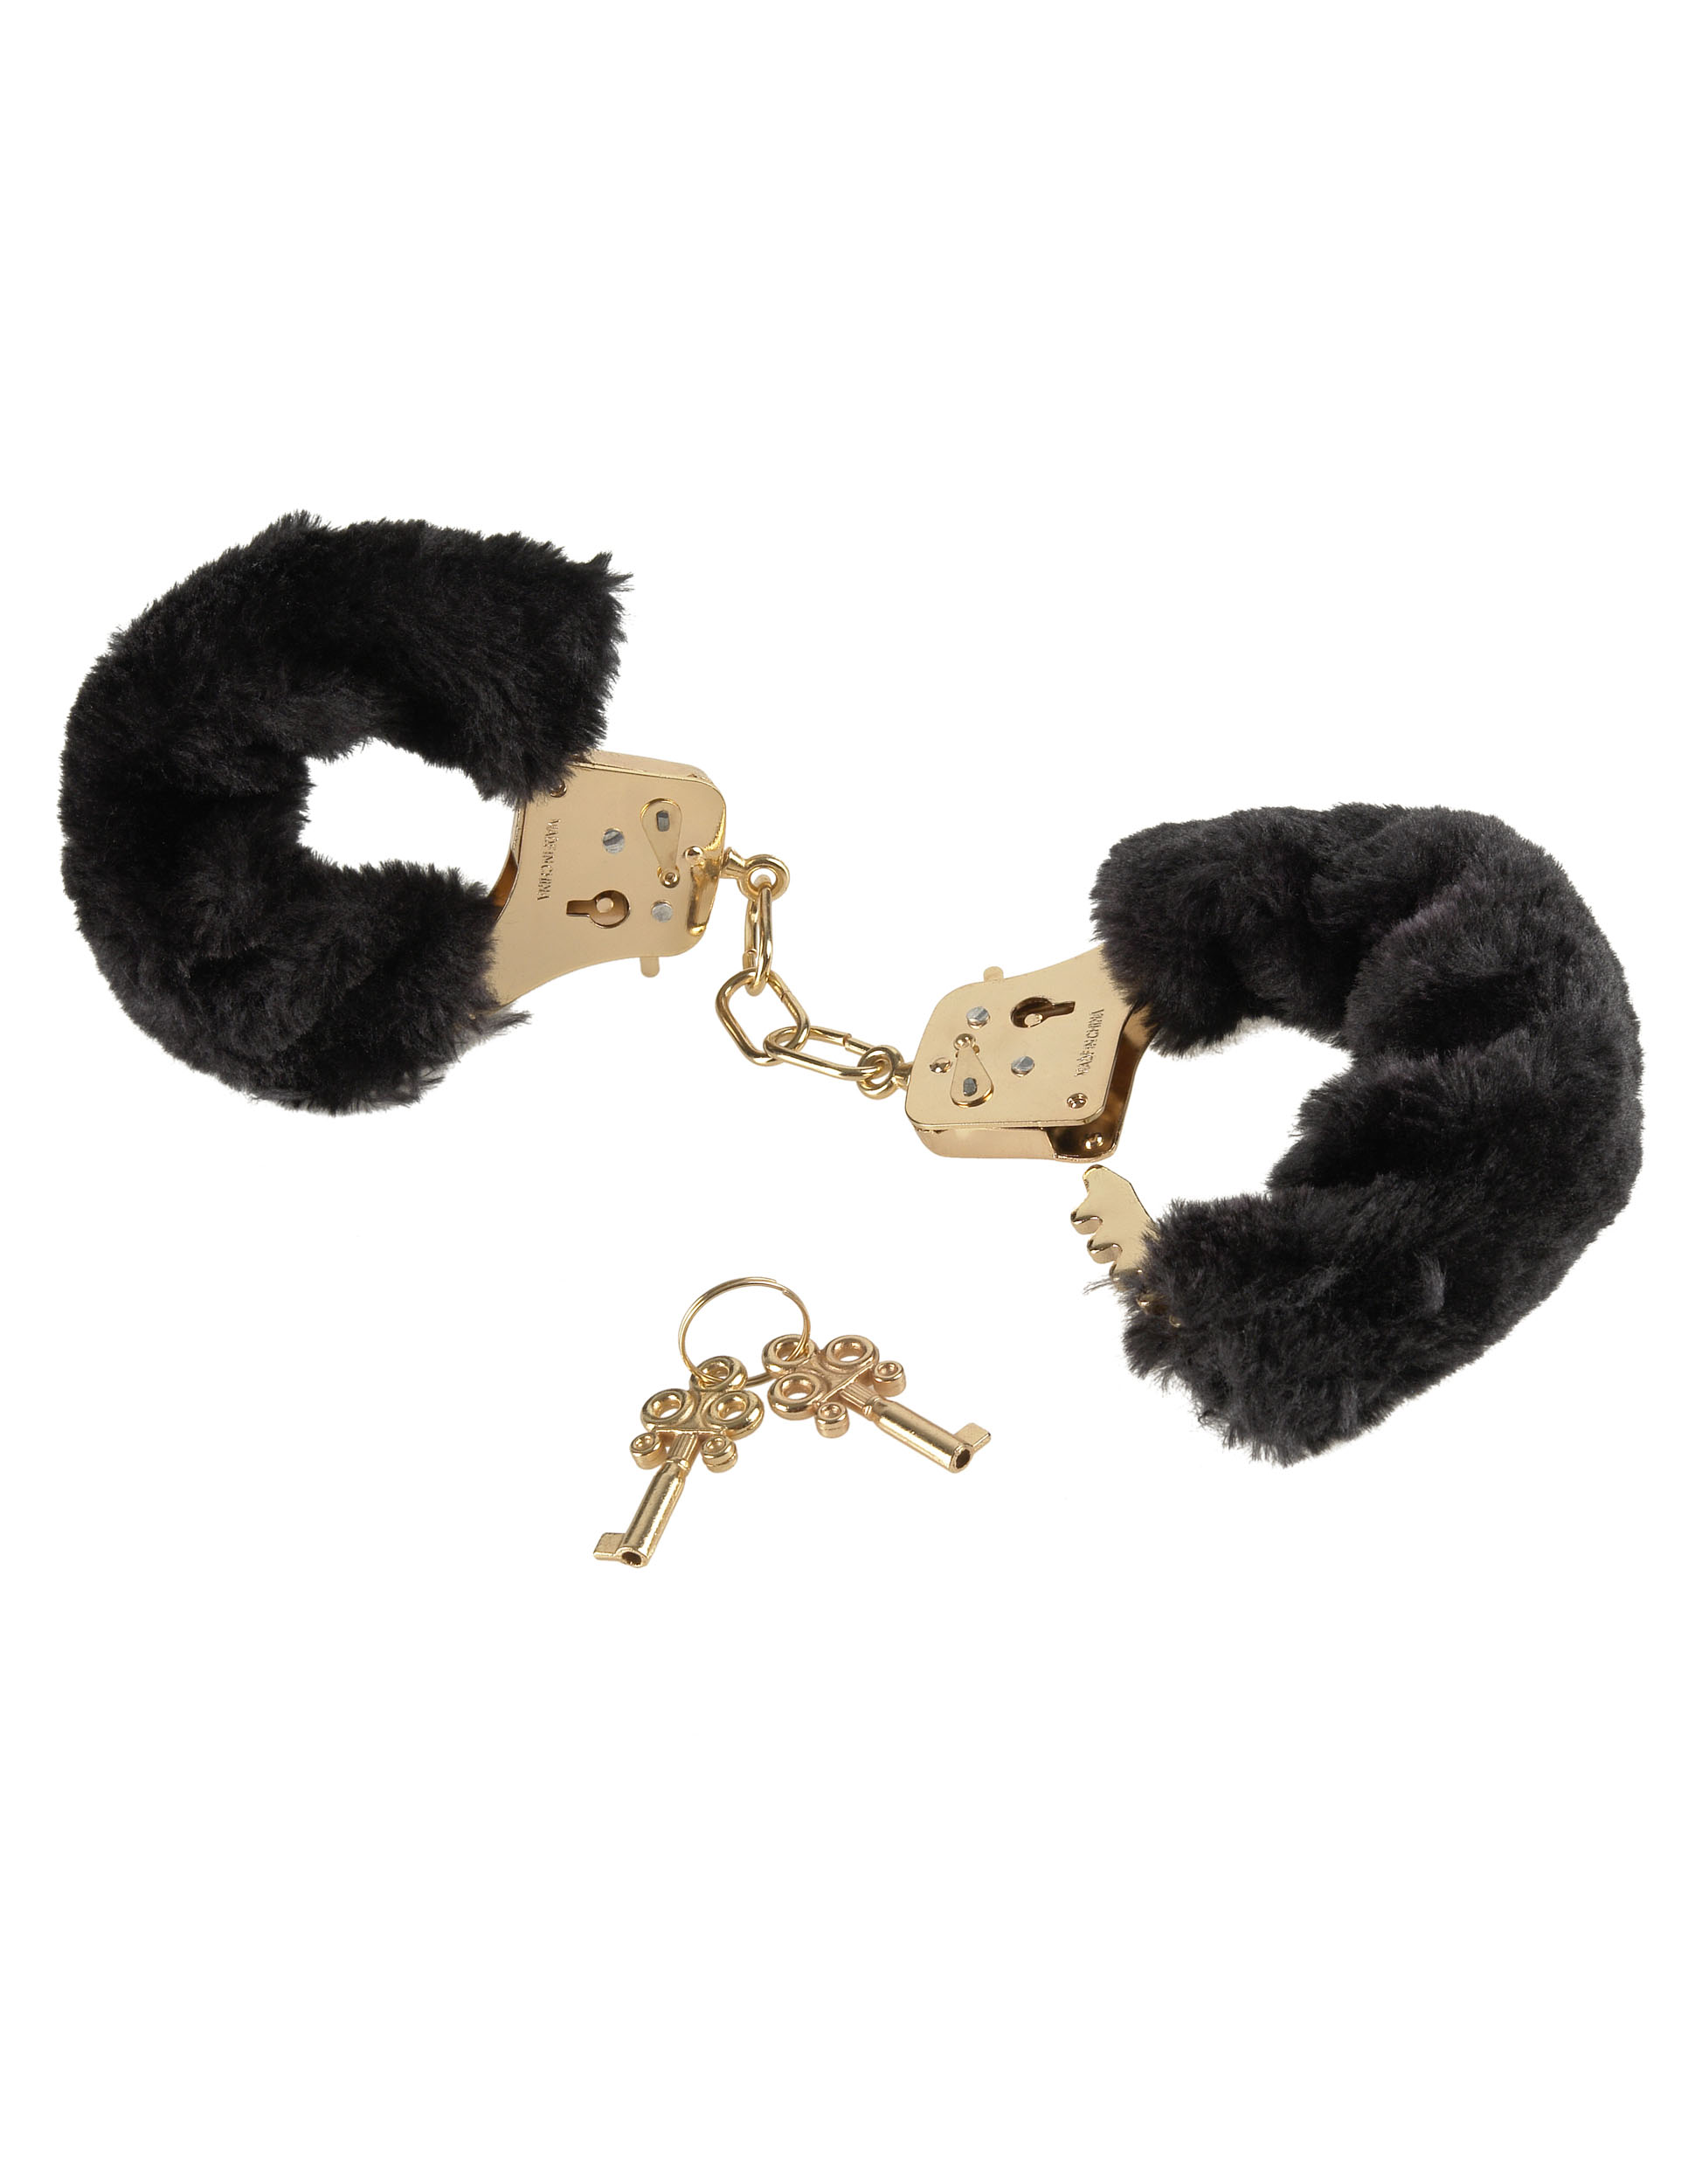 Deluxe Furry Cuffs Gold